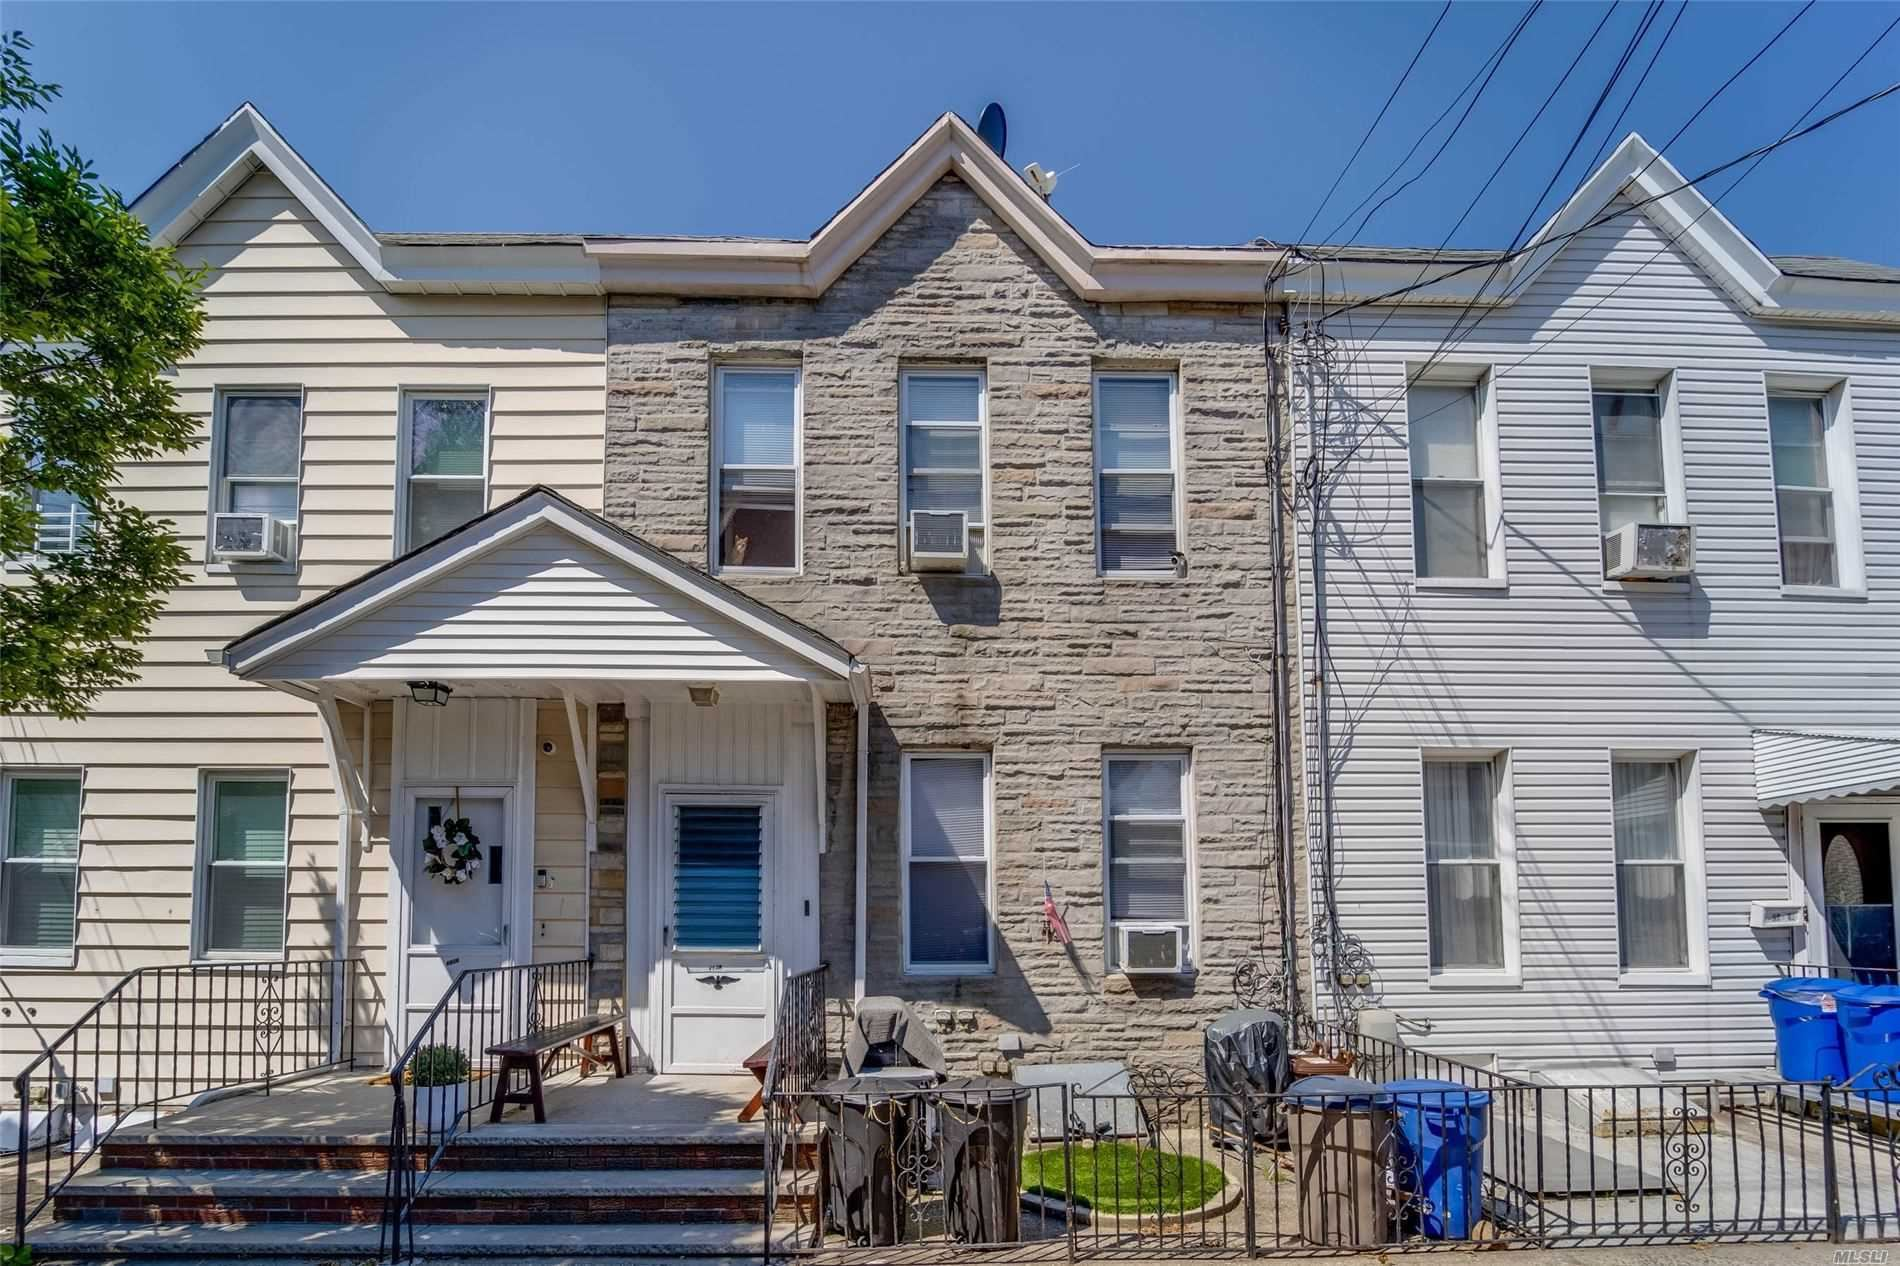 69-34 75th Street, Middle Village, NY 11379 - MLS#: 3239403